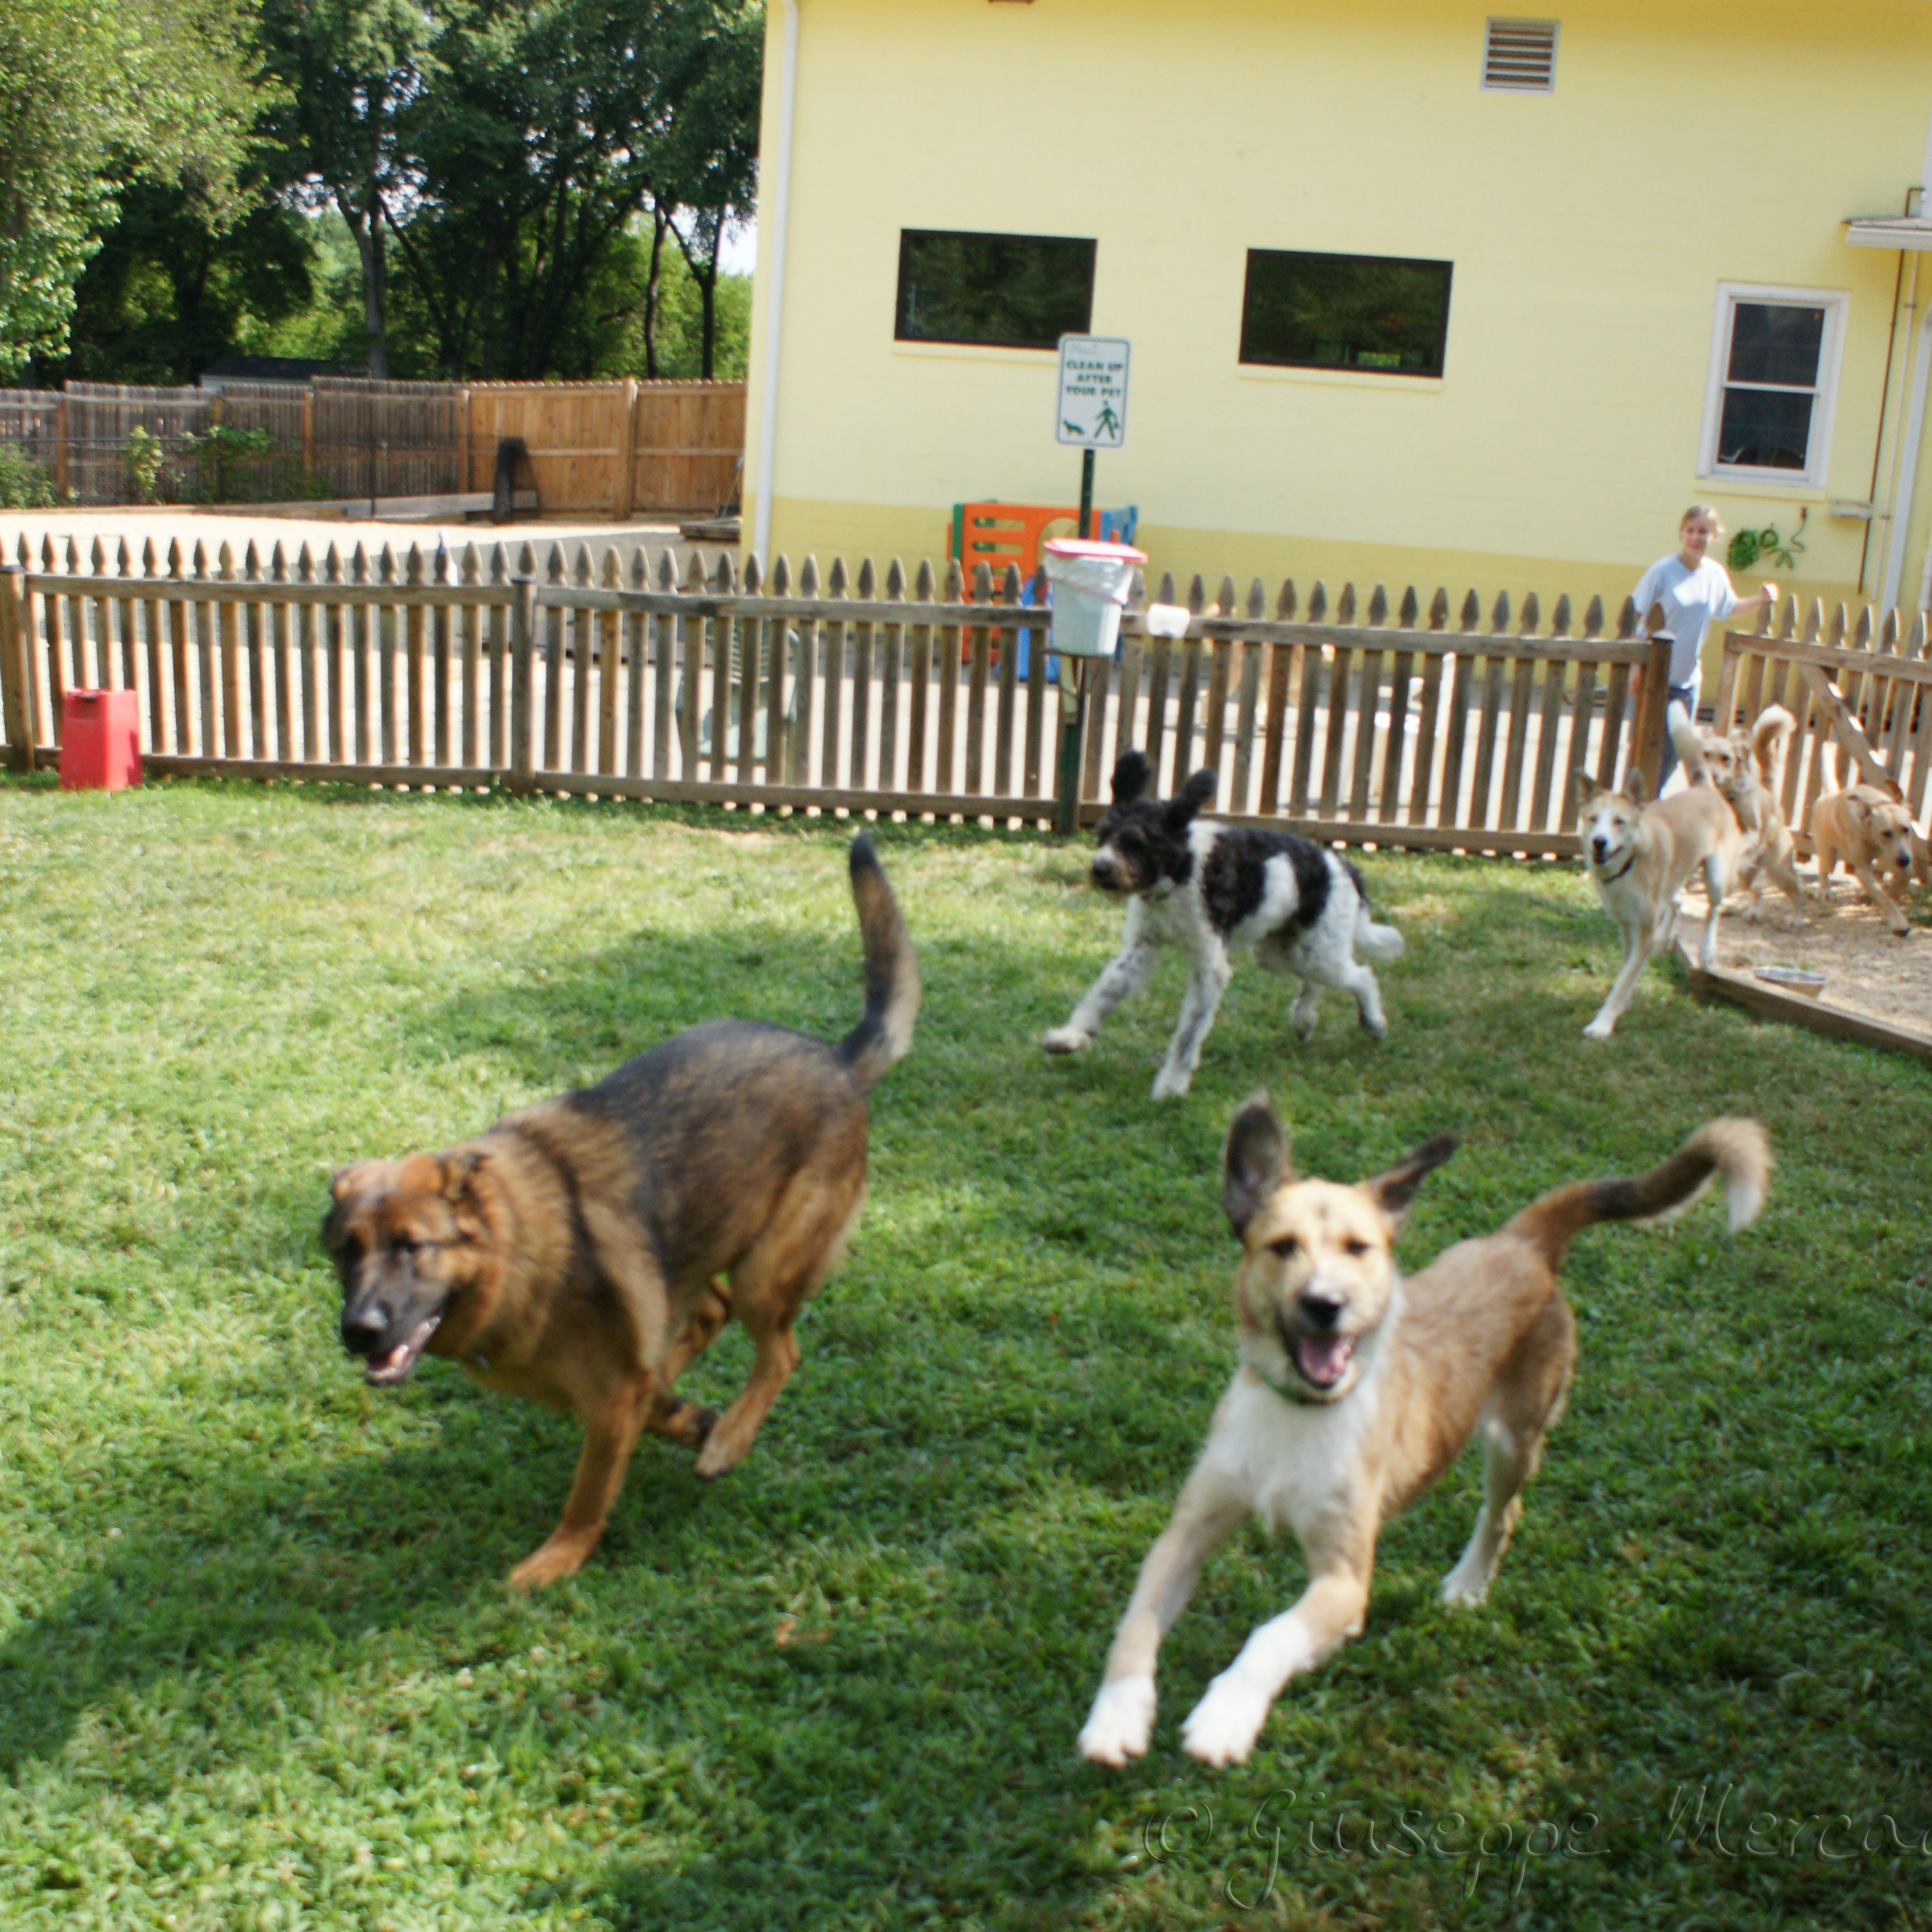 Doggy Day Care Business for Sale